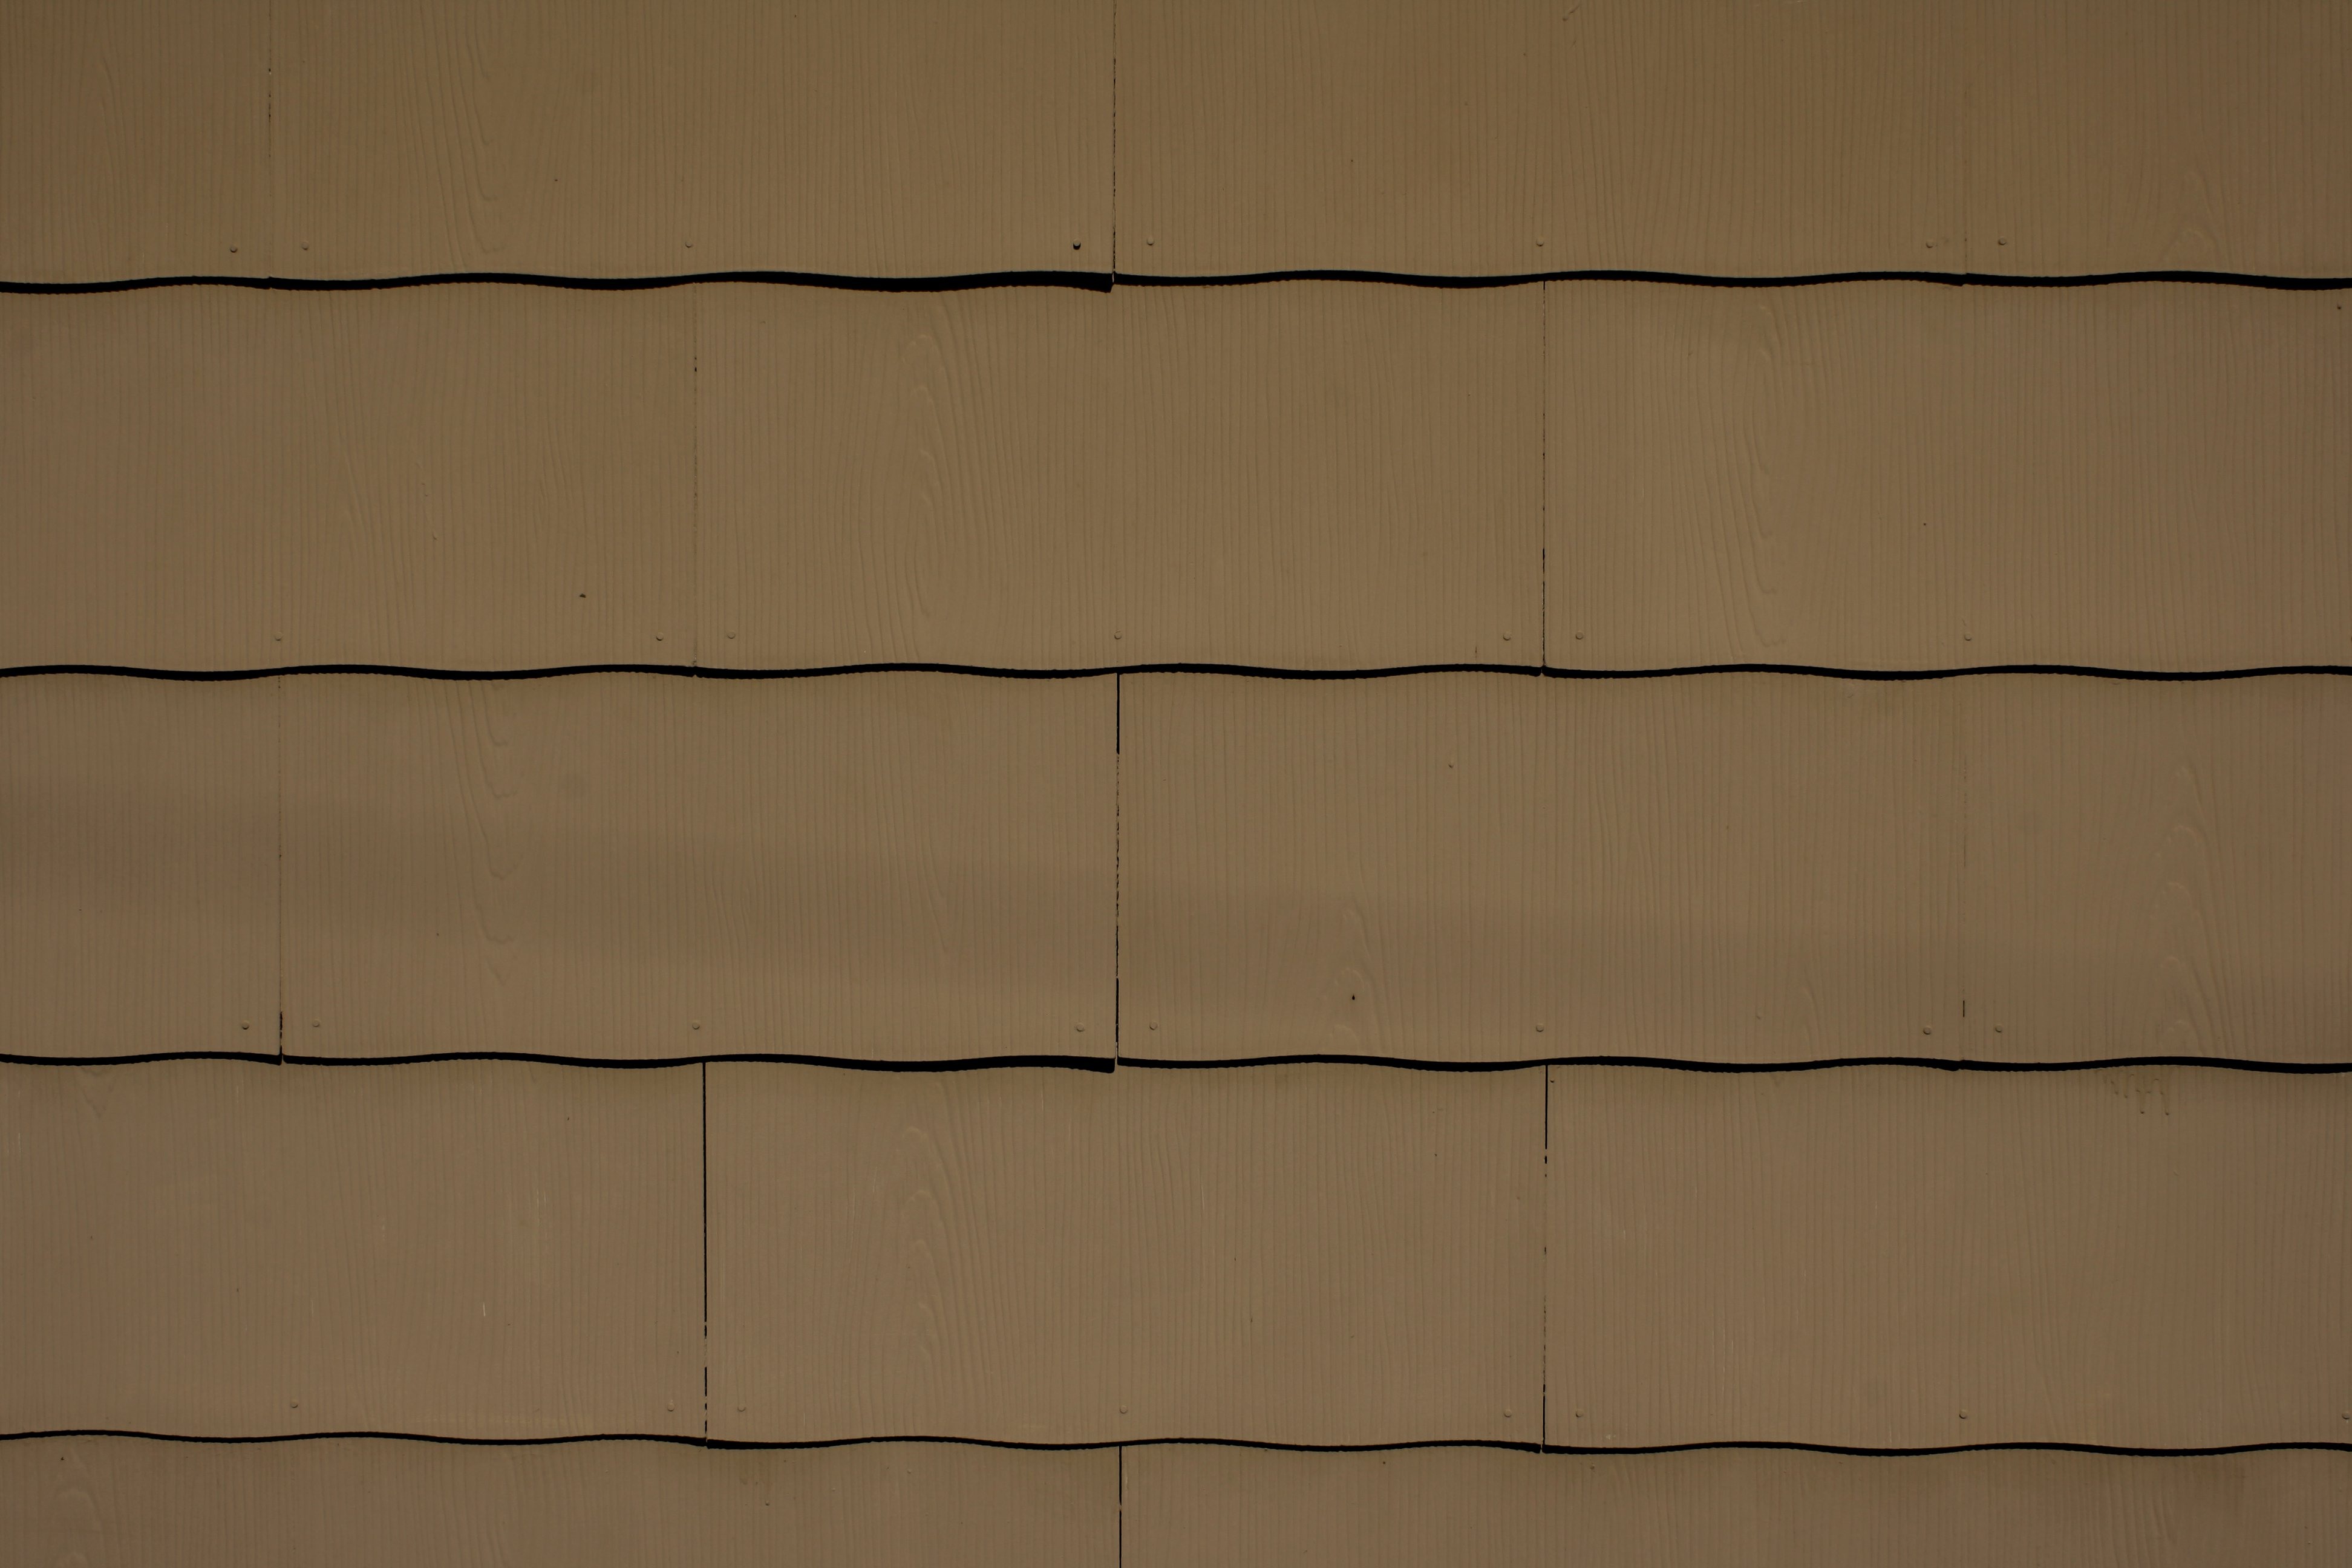 Brown Scalloped Asbestos Siding Shingles Texture Picture